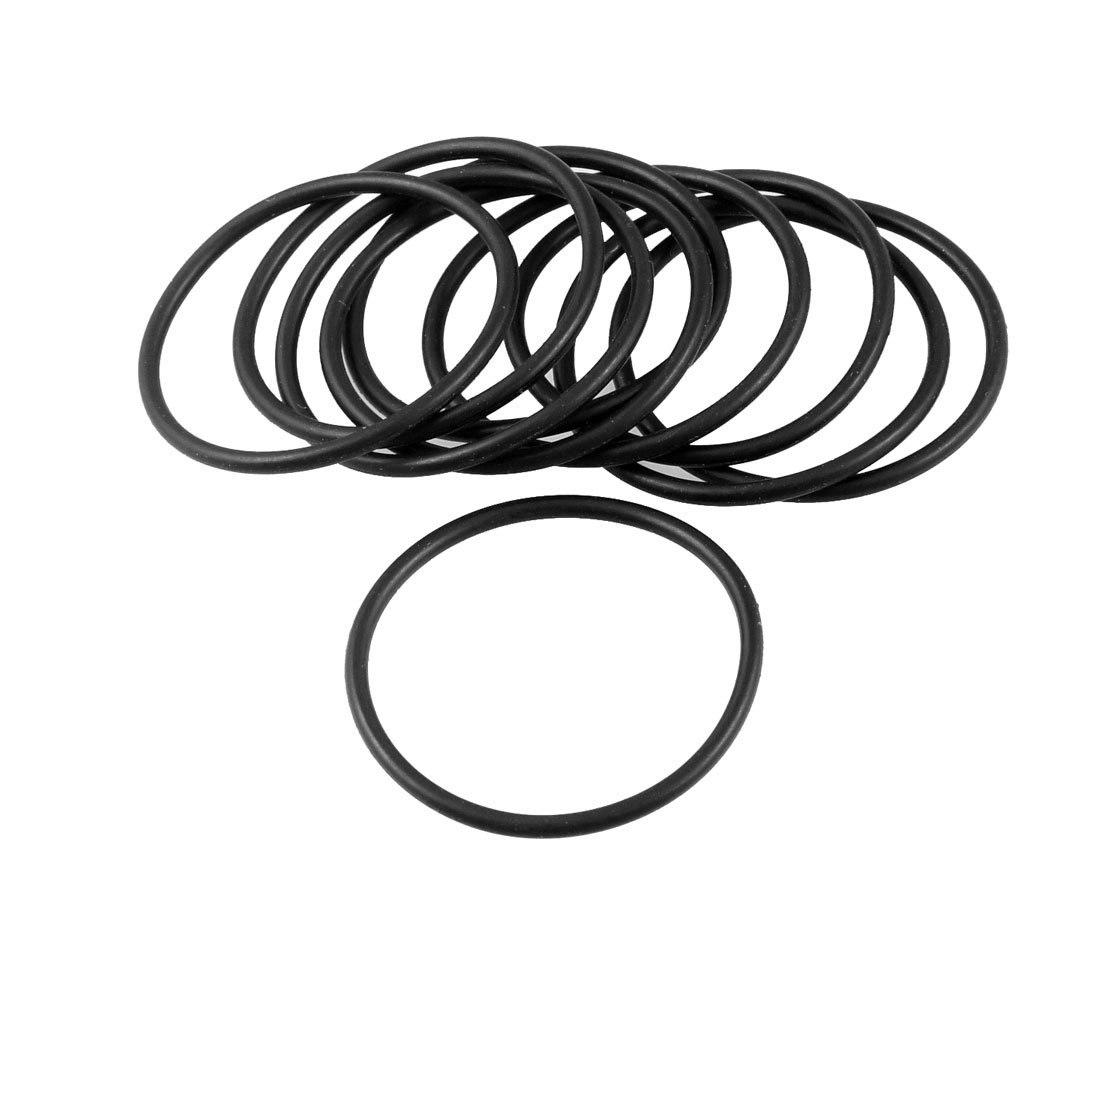 10 Pcs Black 35mm OD 2mm Thickness Nitrile Rubber O-ring Oil Seal Gaskets